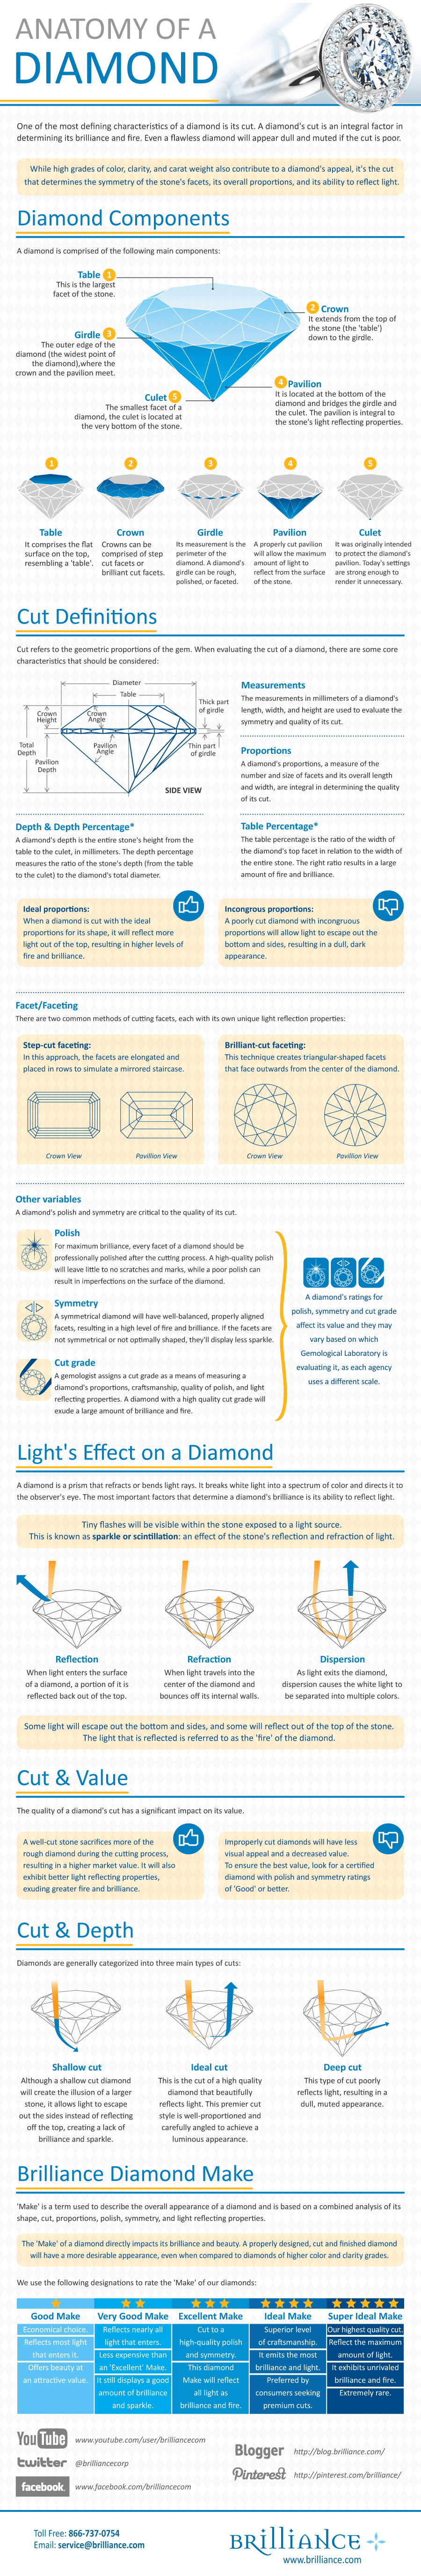 The Anatomy Of A Diamond Infographic Infographic